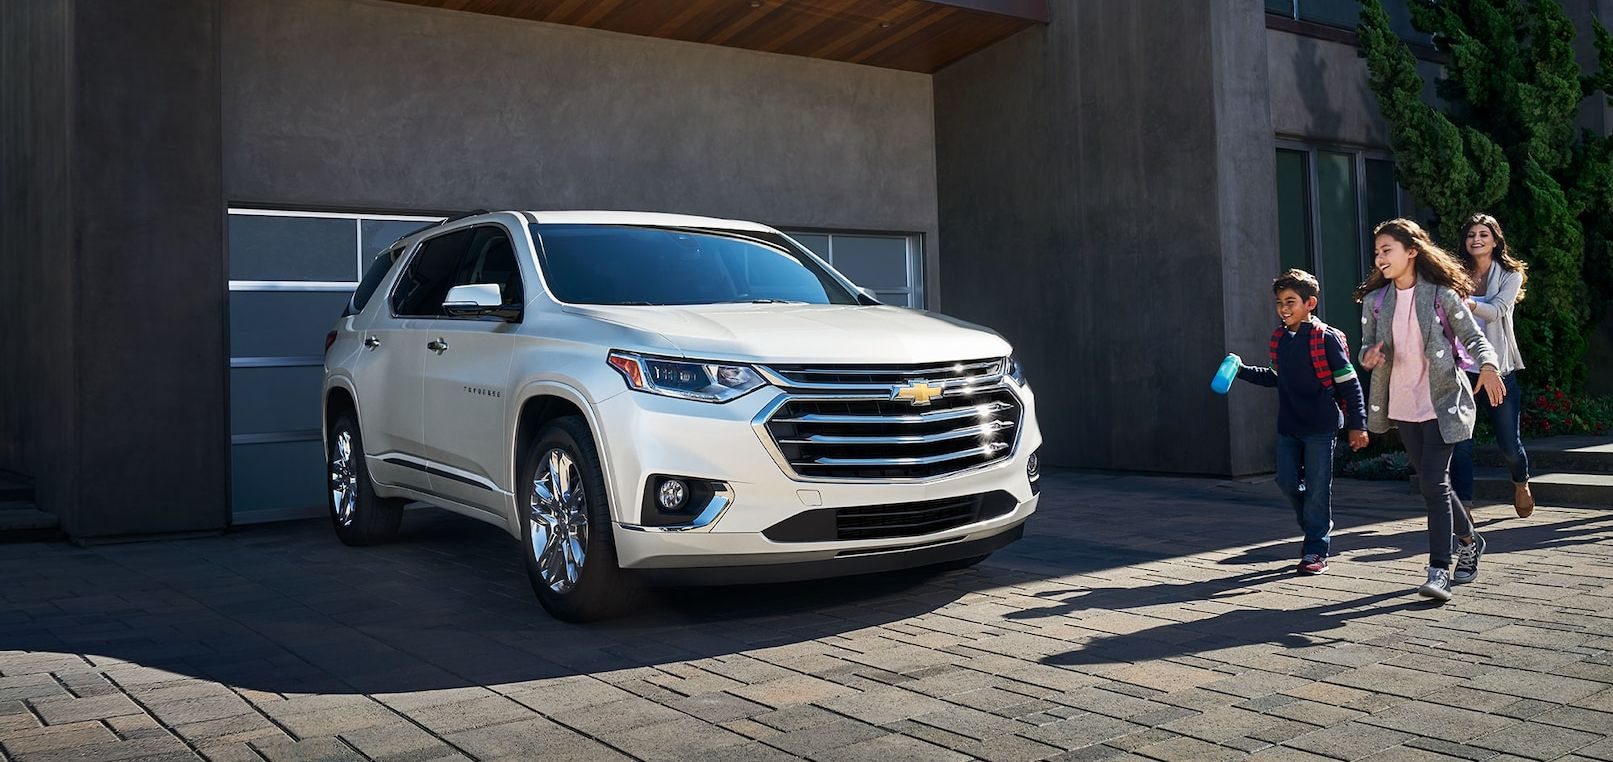 Used Chevrolet Traverse for Sale in Boardman, OH